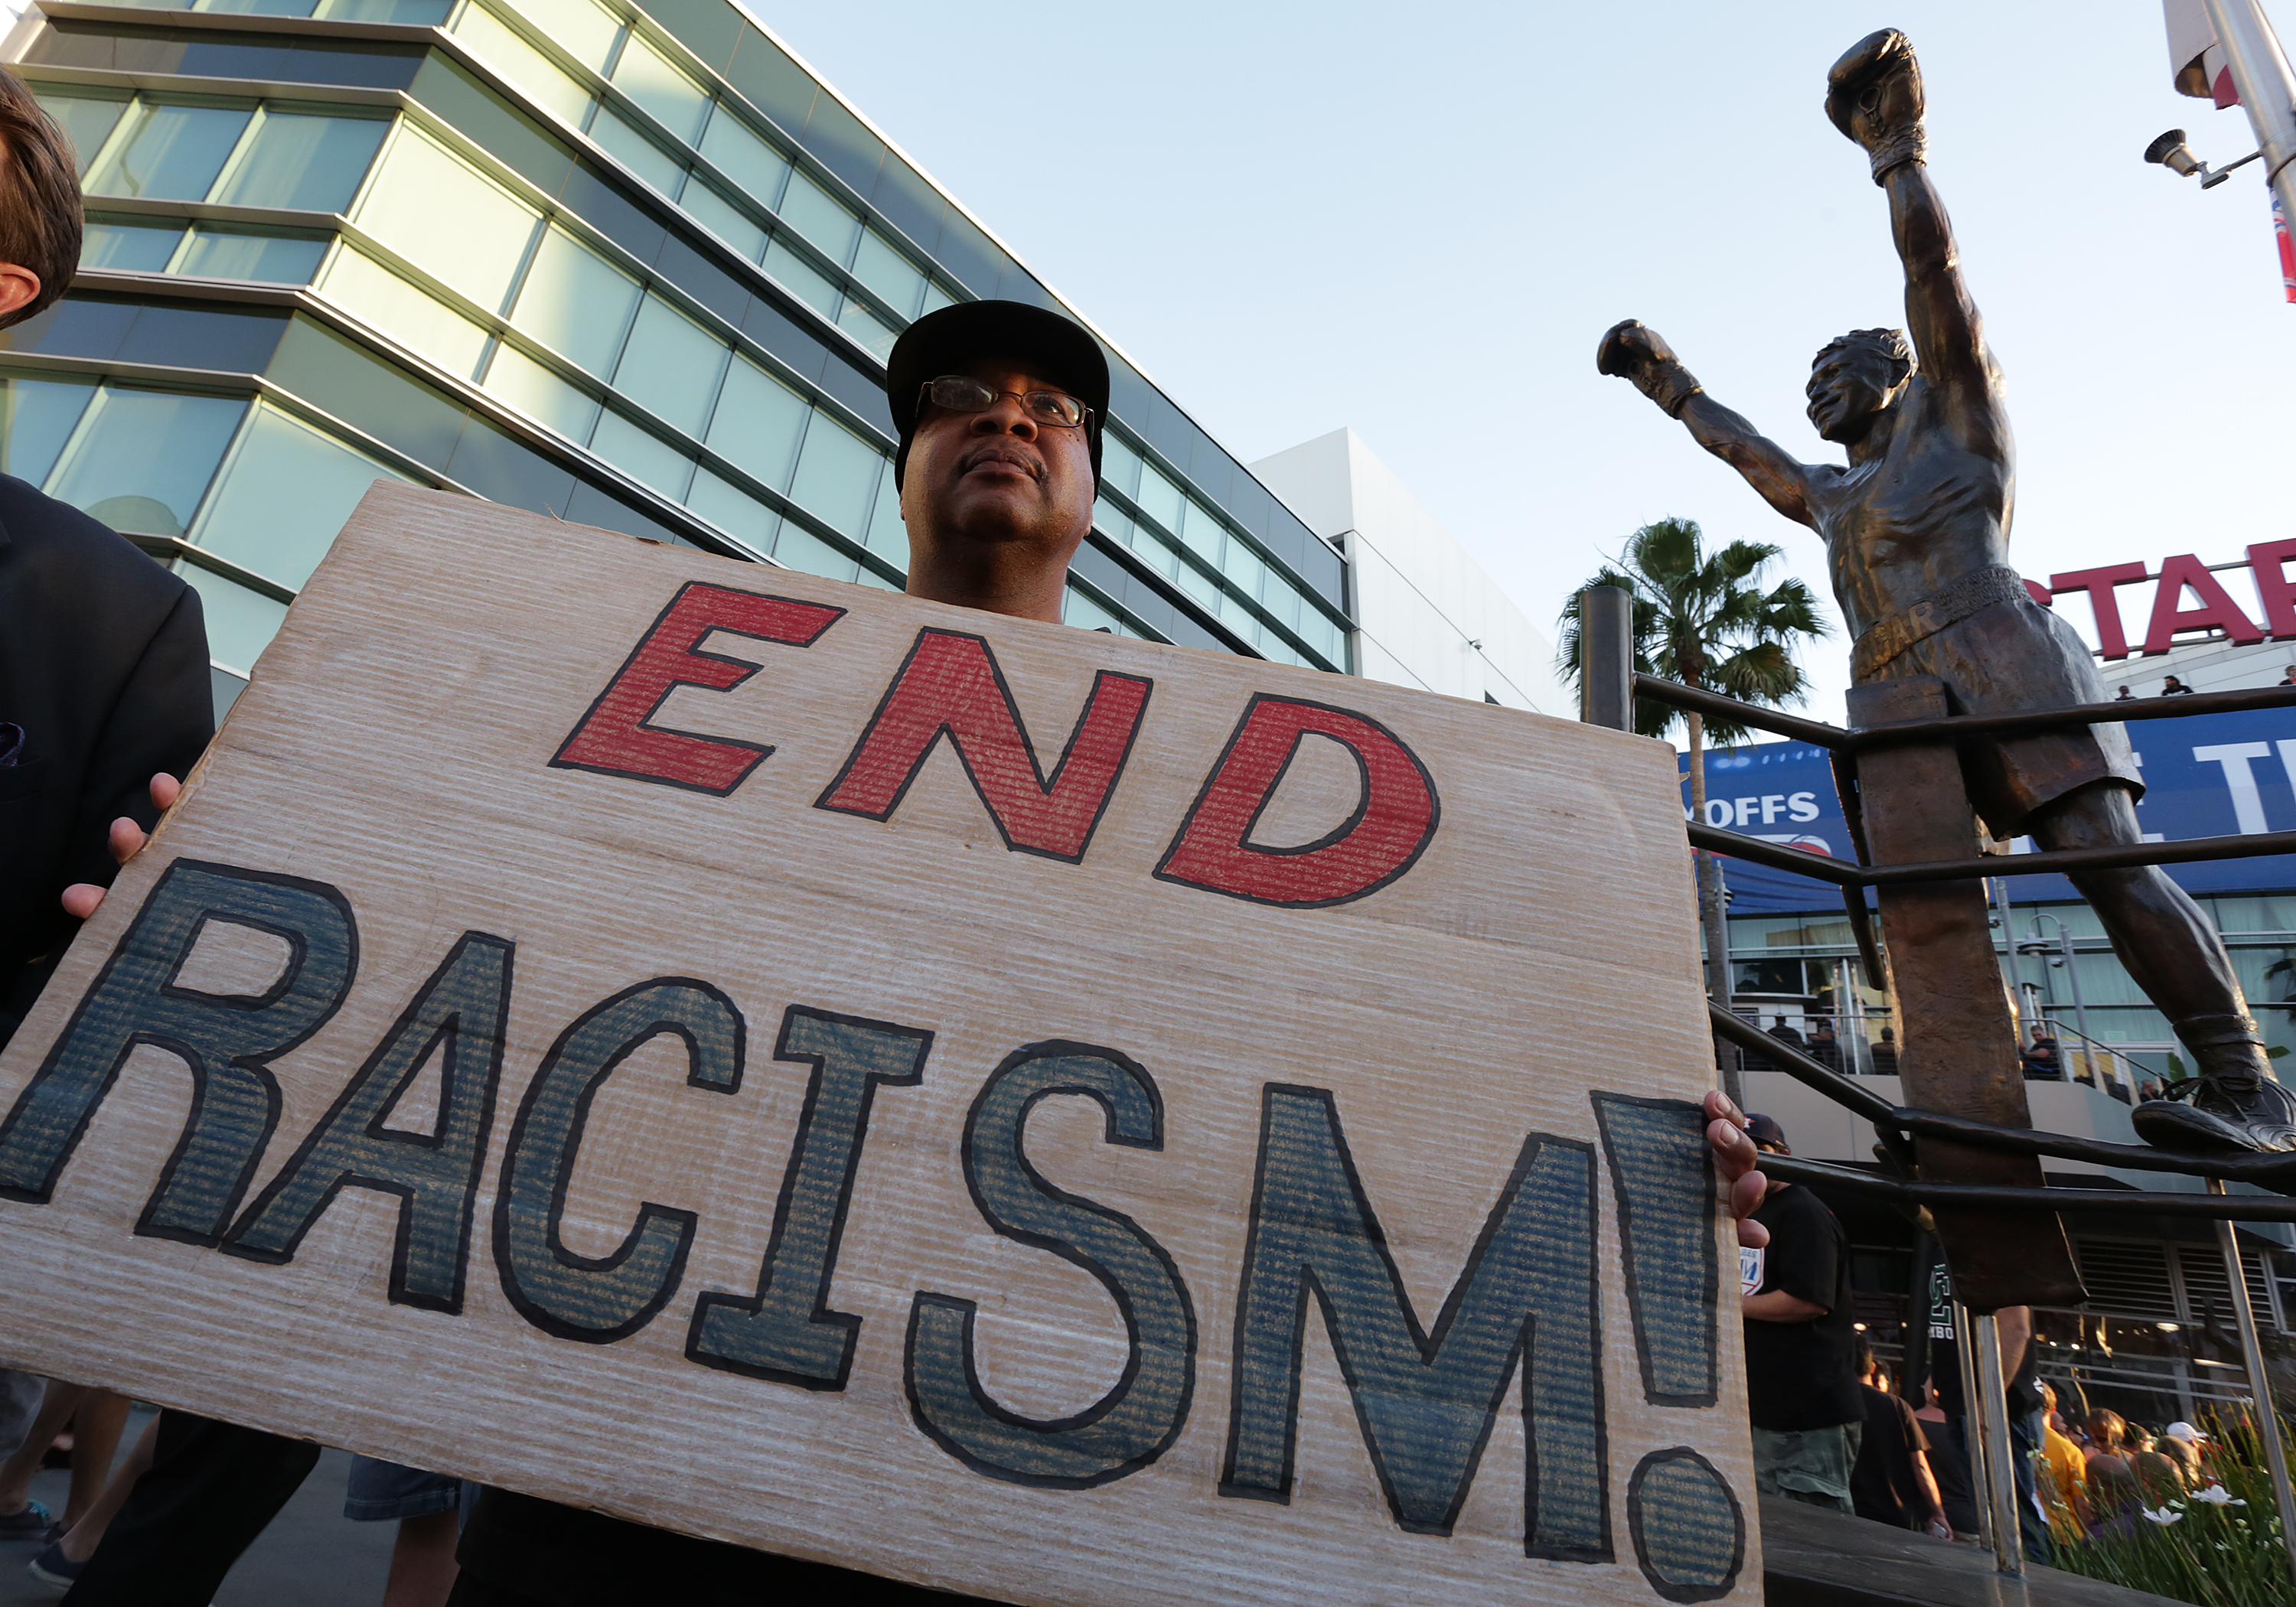 Opinion: Often Unspoken, Racism Within The Latino Community | Fox News